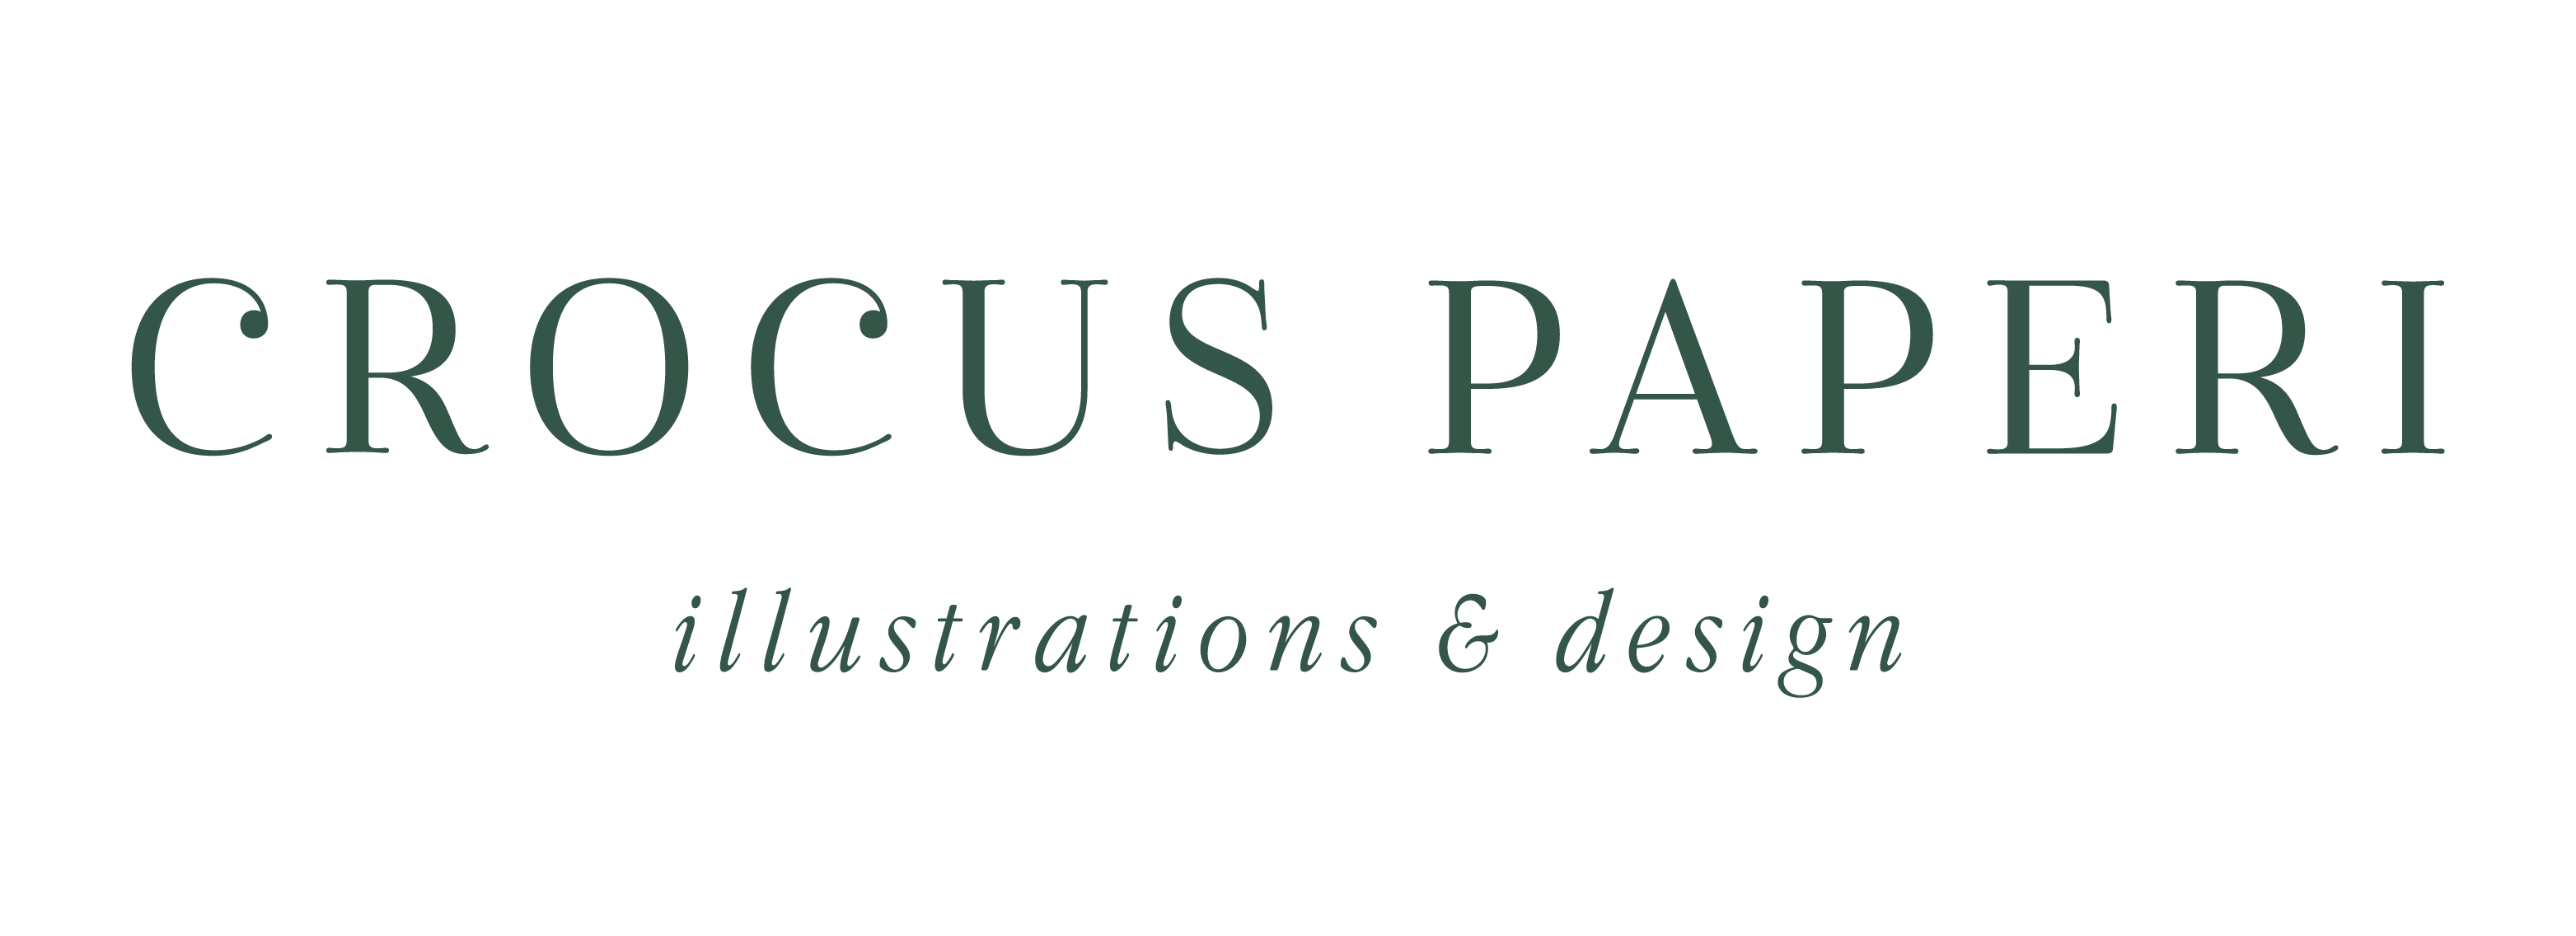 Crocus Paperi | Illustrations, graphic design, branding logo